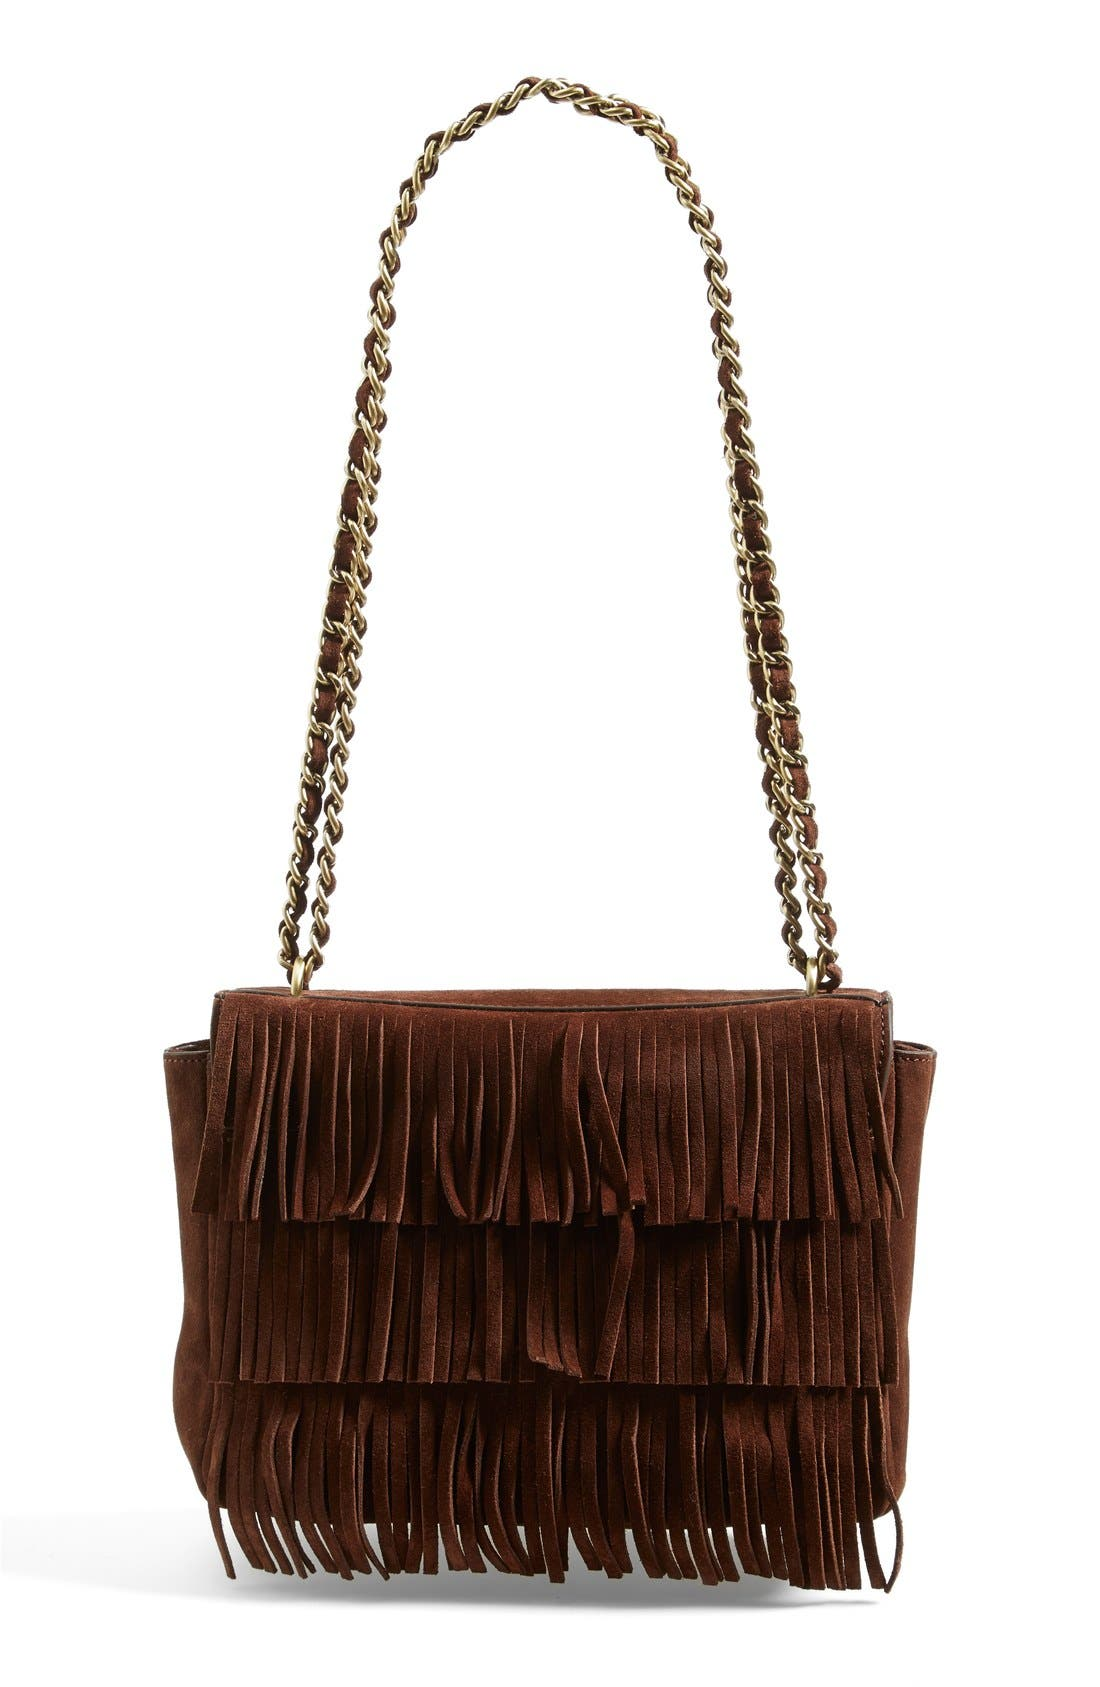 TORY BURCH Fringe Shoulder Bag, Main, color, 201